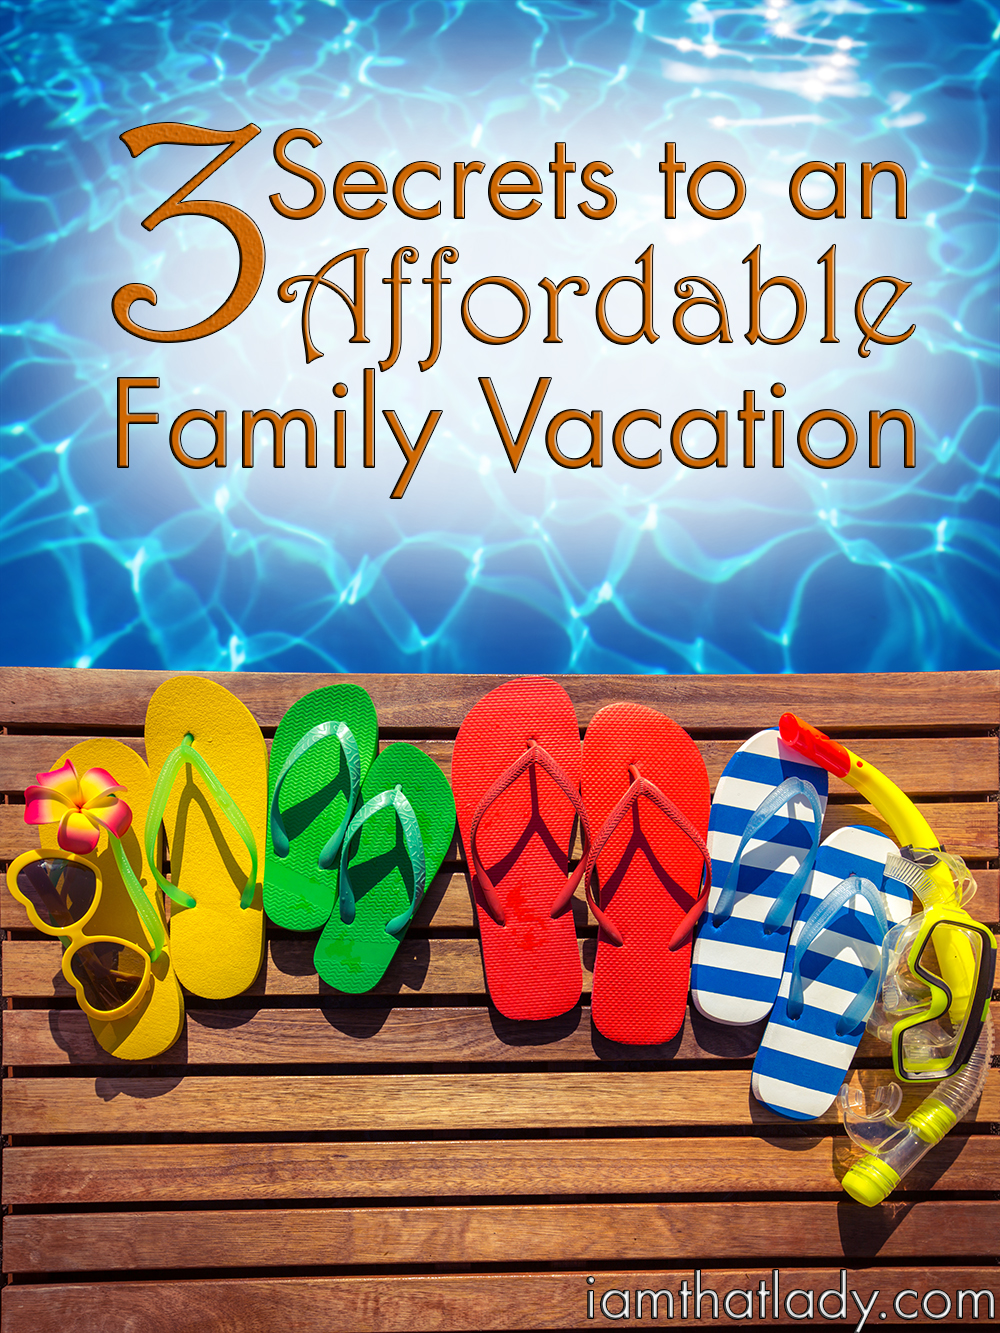 Summer is upon us and you may be wanting to go on a vacation this year. We have a secret, actually 3 secrets to have an affordable family vacation. We actually just booked an entire week vacation directly on a beach for $1,700. See how we are getting a great deal and how you can do it too!